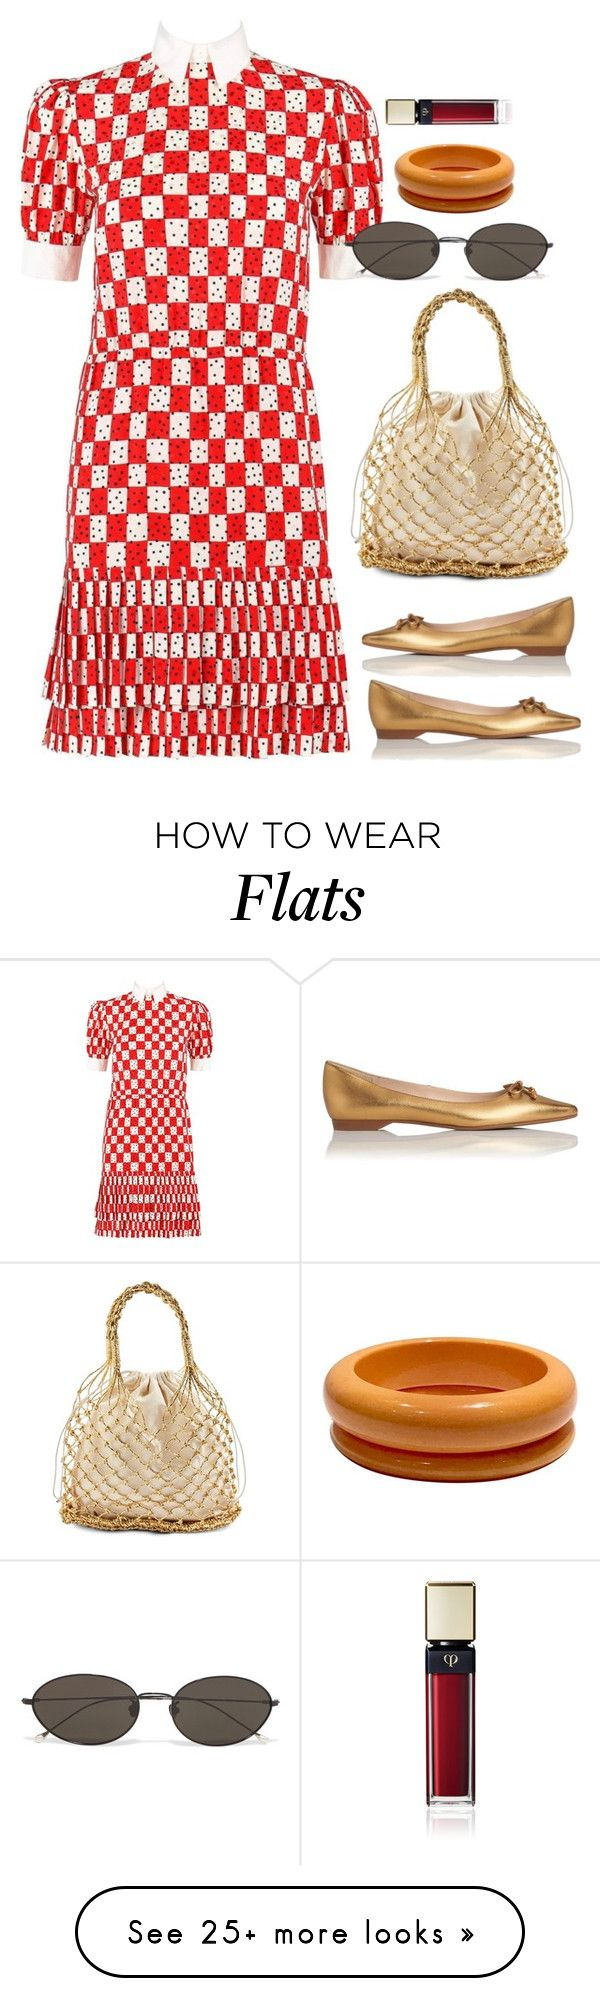 """""""Bold is beautiful"""" by xoxomuty on Polyvore featuring Bill Blass, Topshop, Ann Demeulemeester, Clé de Peau Beauté, ootd and polyvoreOOTD"""